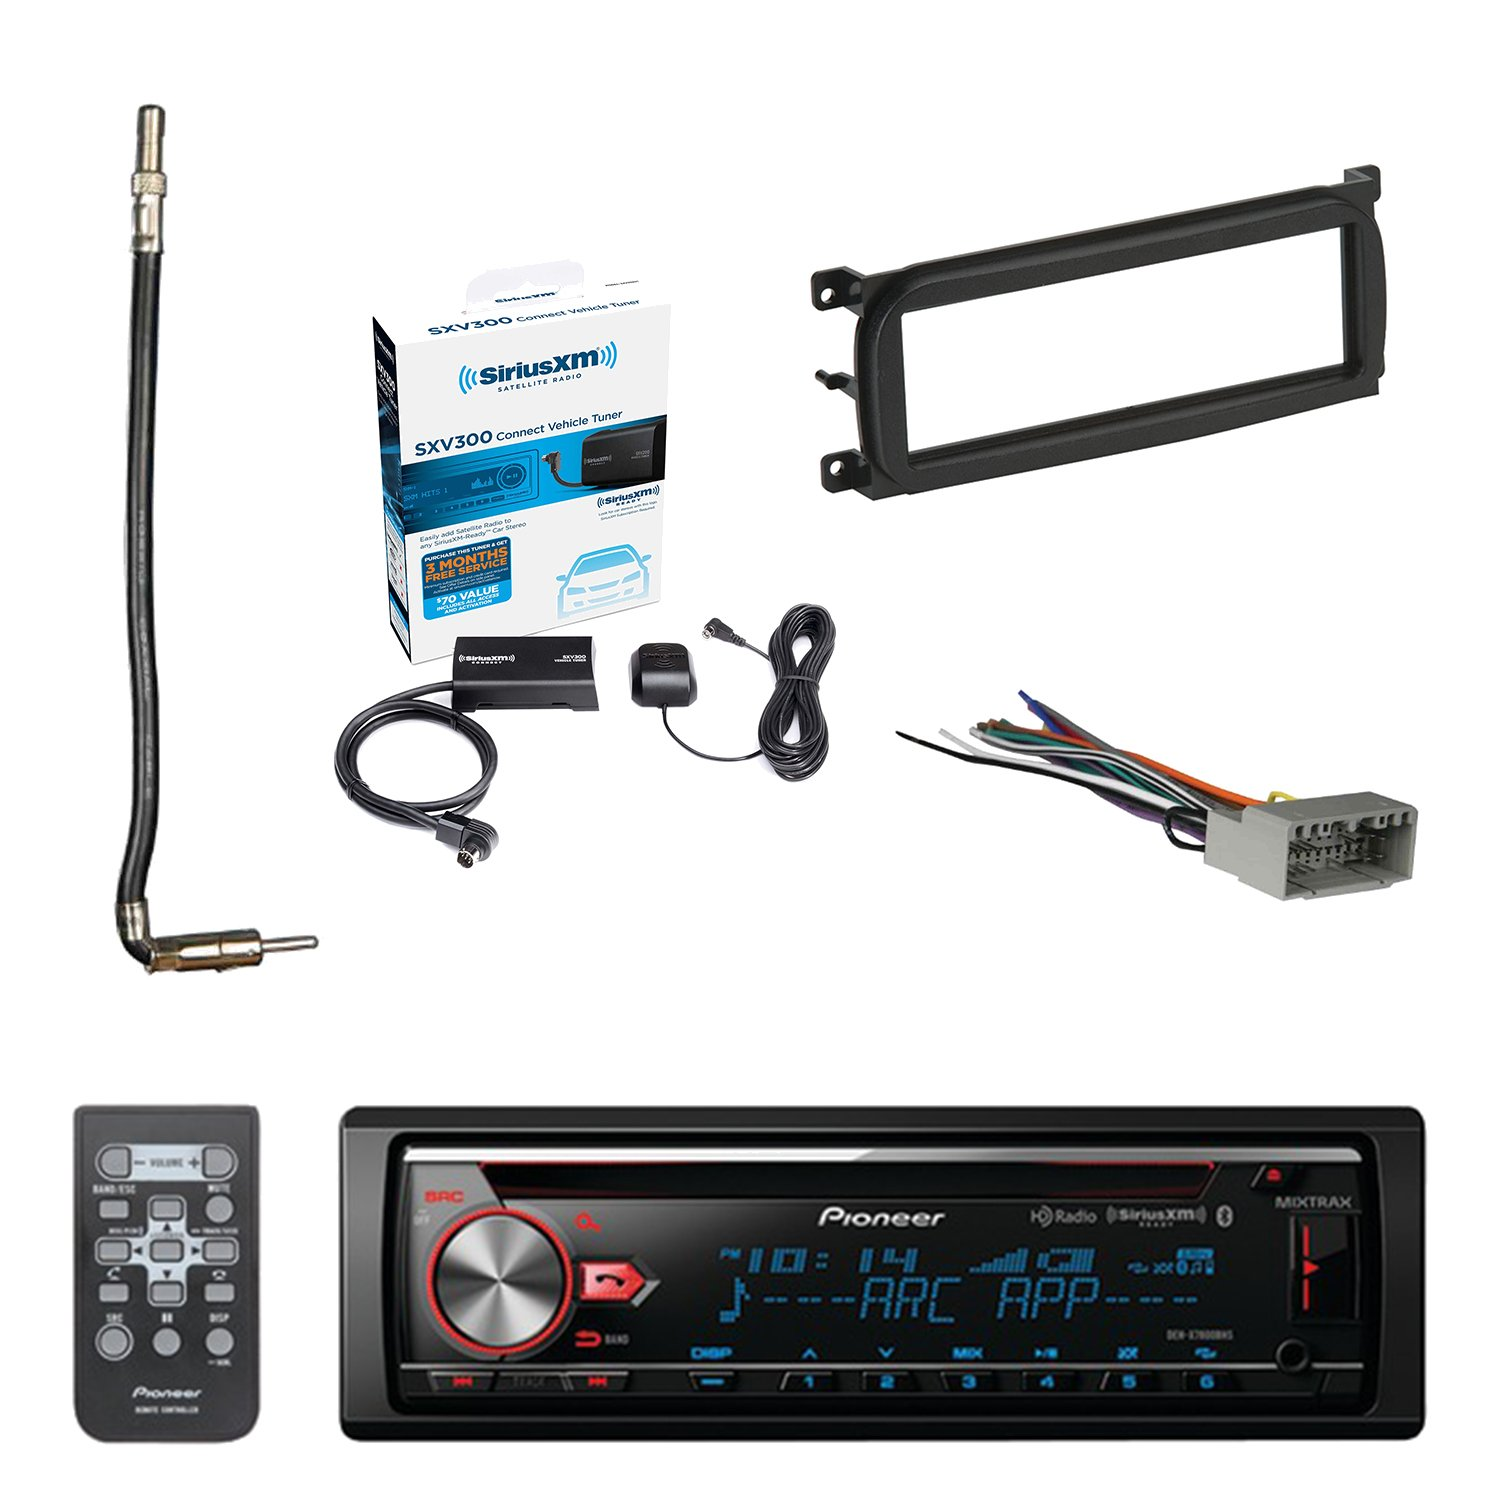 Pioneer CD Bluetooth Receiver with Enhanced Audio Functions with SiriusXM Satellite Radio Connect Vehicle Tuner Kit, Metra Dash Kit For Chry/Dodge/Jeep, Radio Wiring Harness & Antenna Adapter Cable